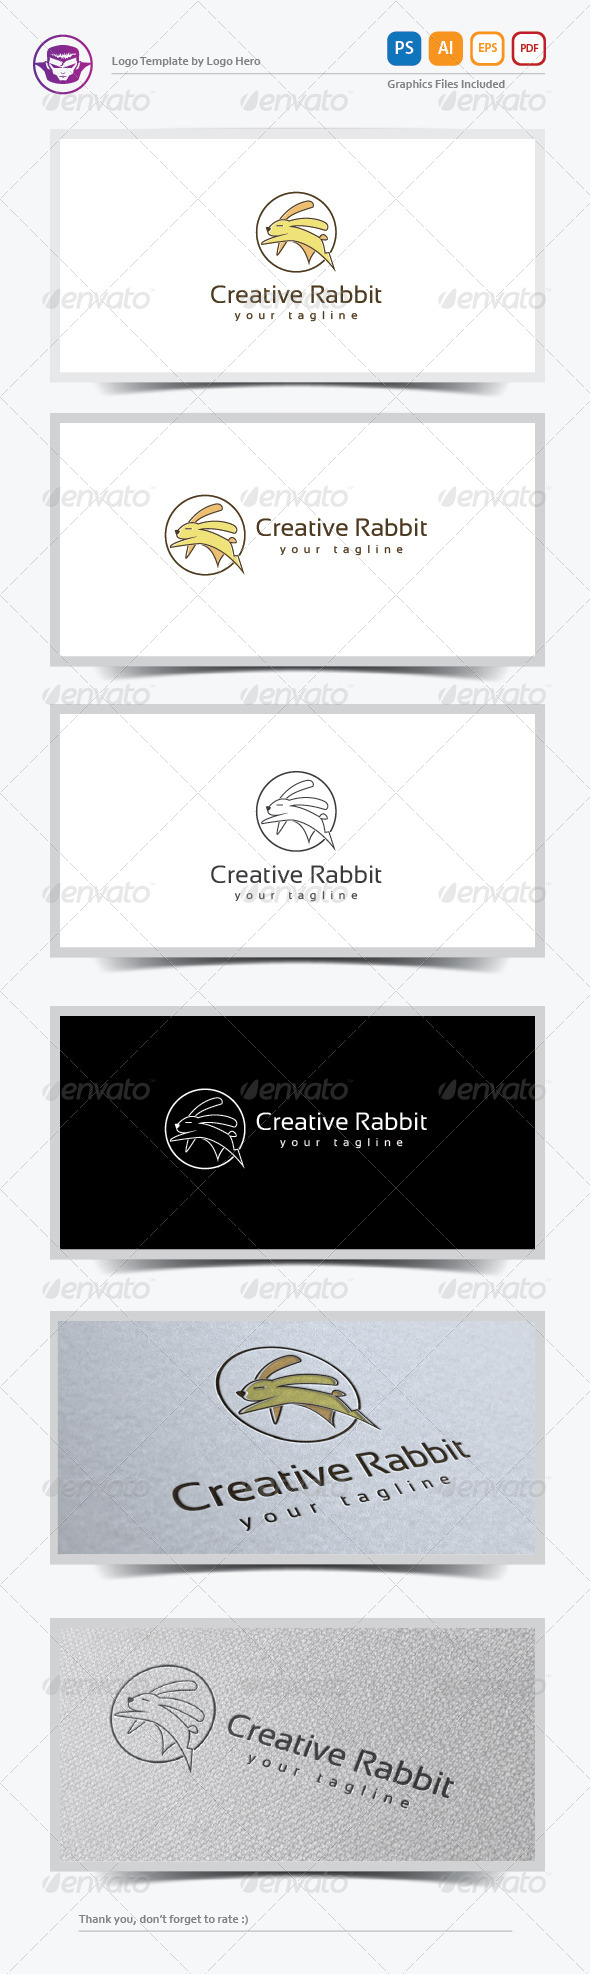 GraphicRiver Creative Rabbit Logo Template 8164219